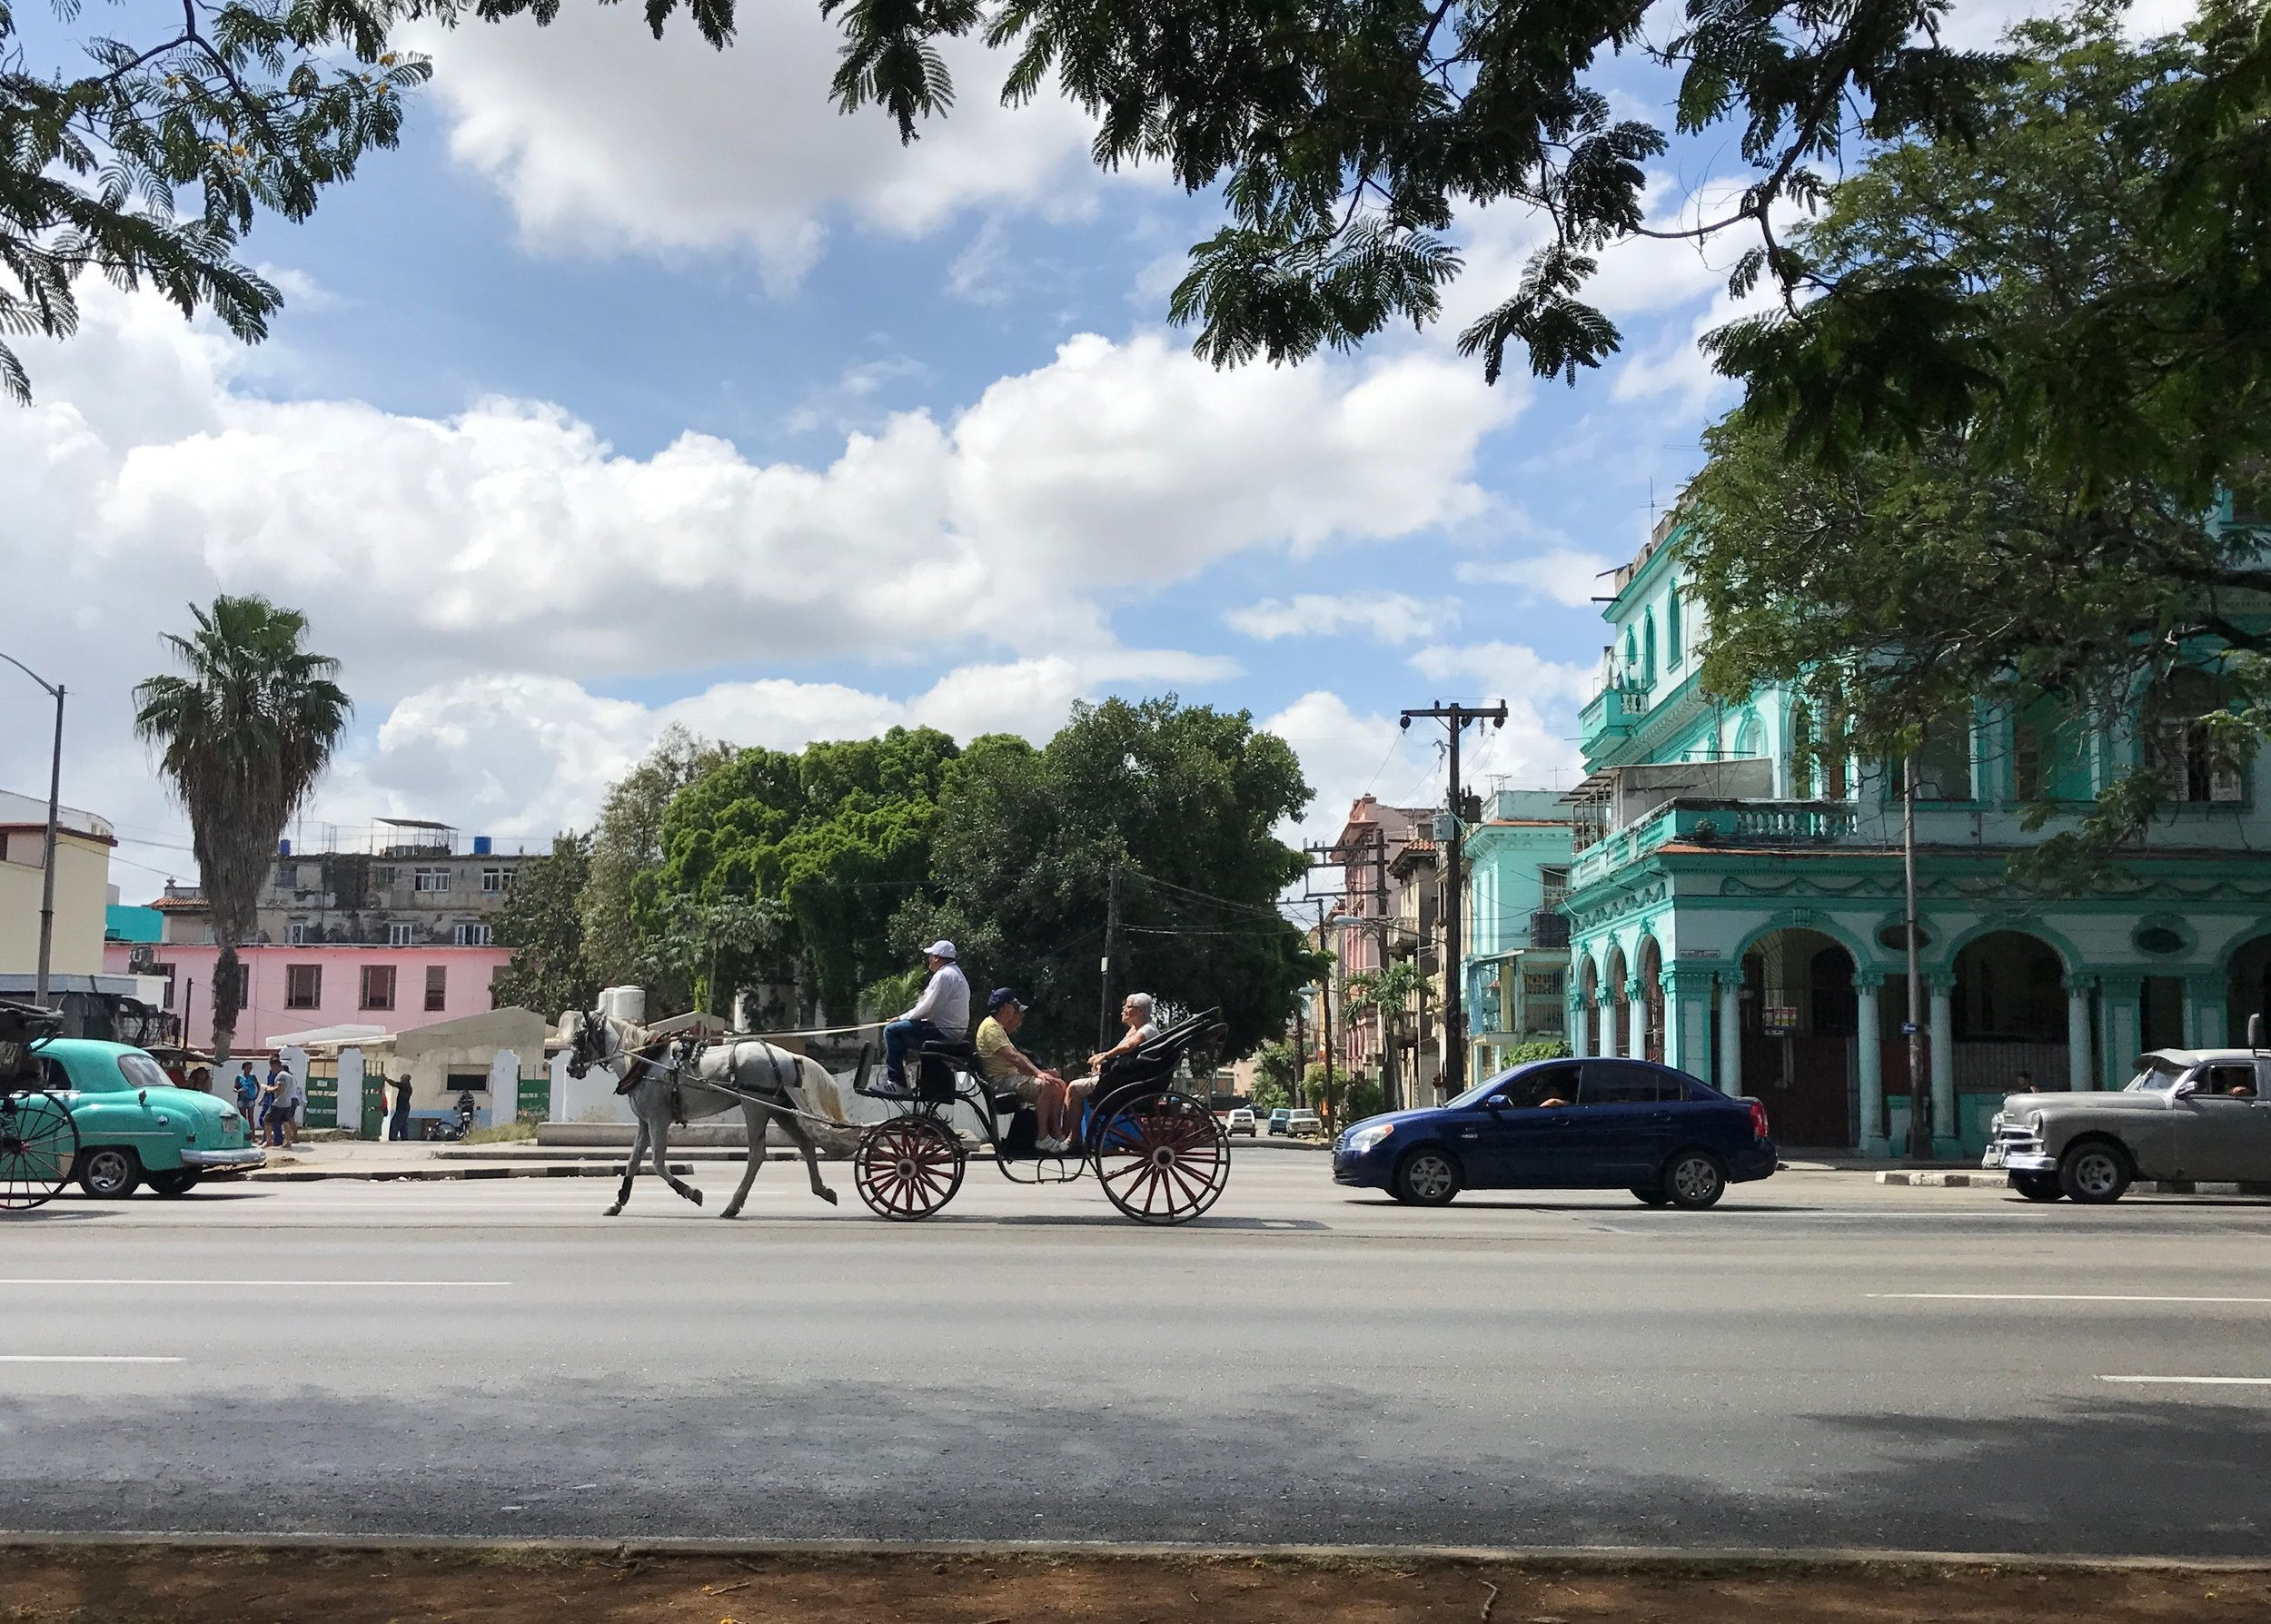 It's not all classic cars in Havana. There's the horse and buggy crowd as well.